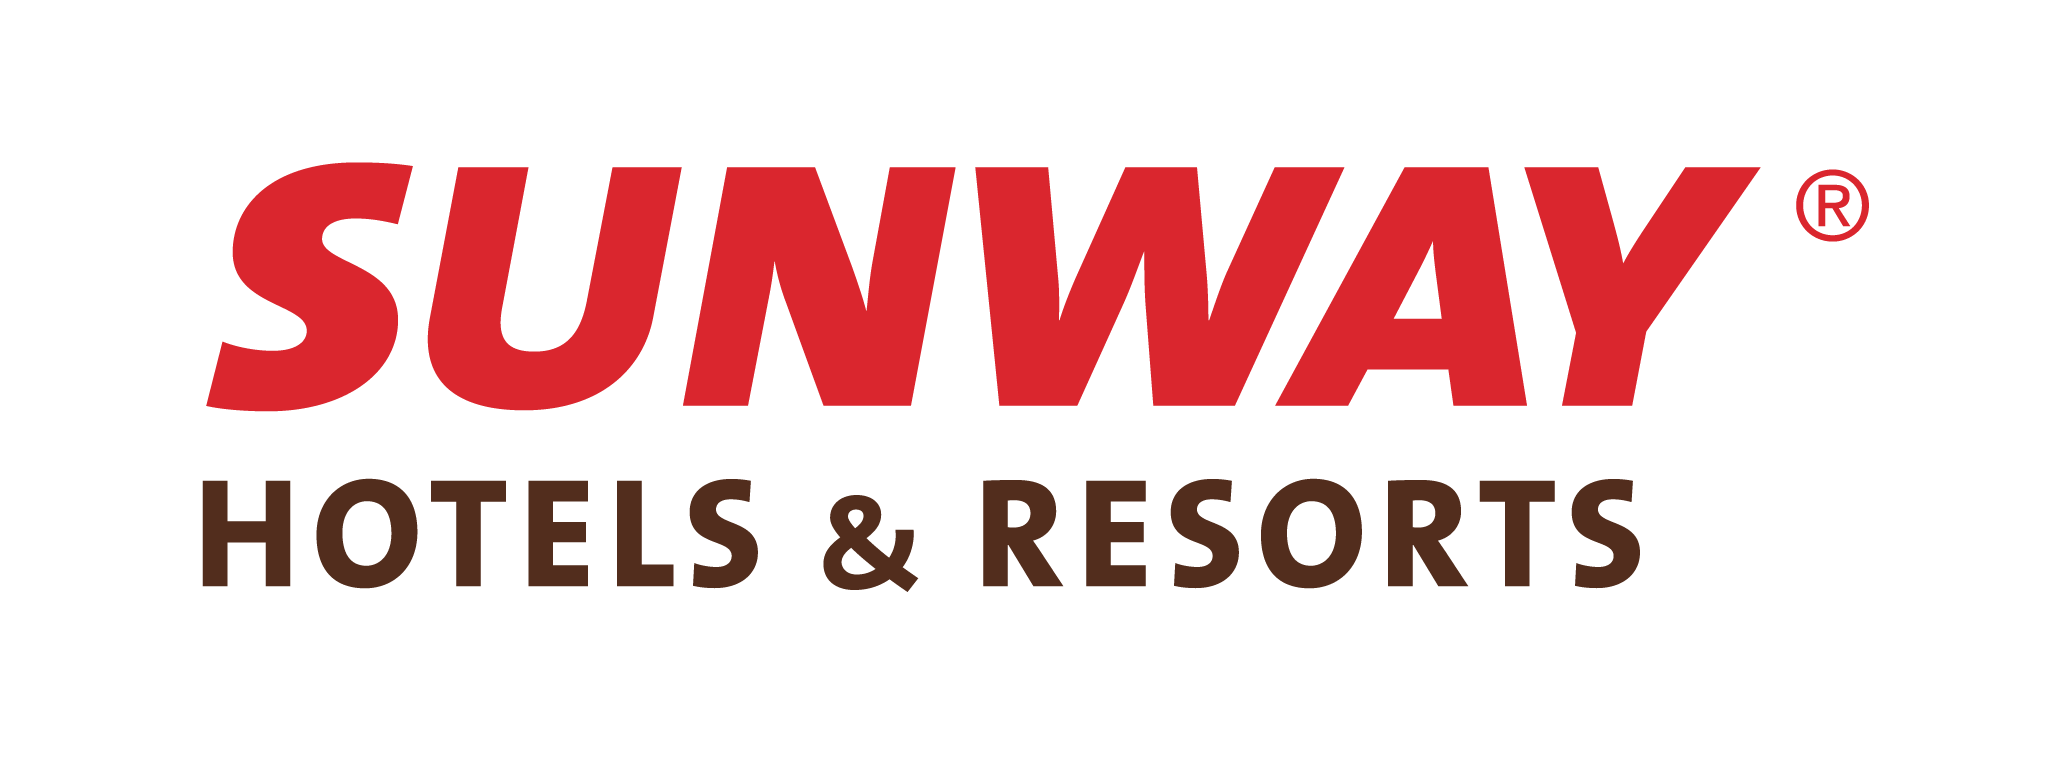 Sunway Hotels & Resorts